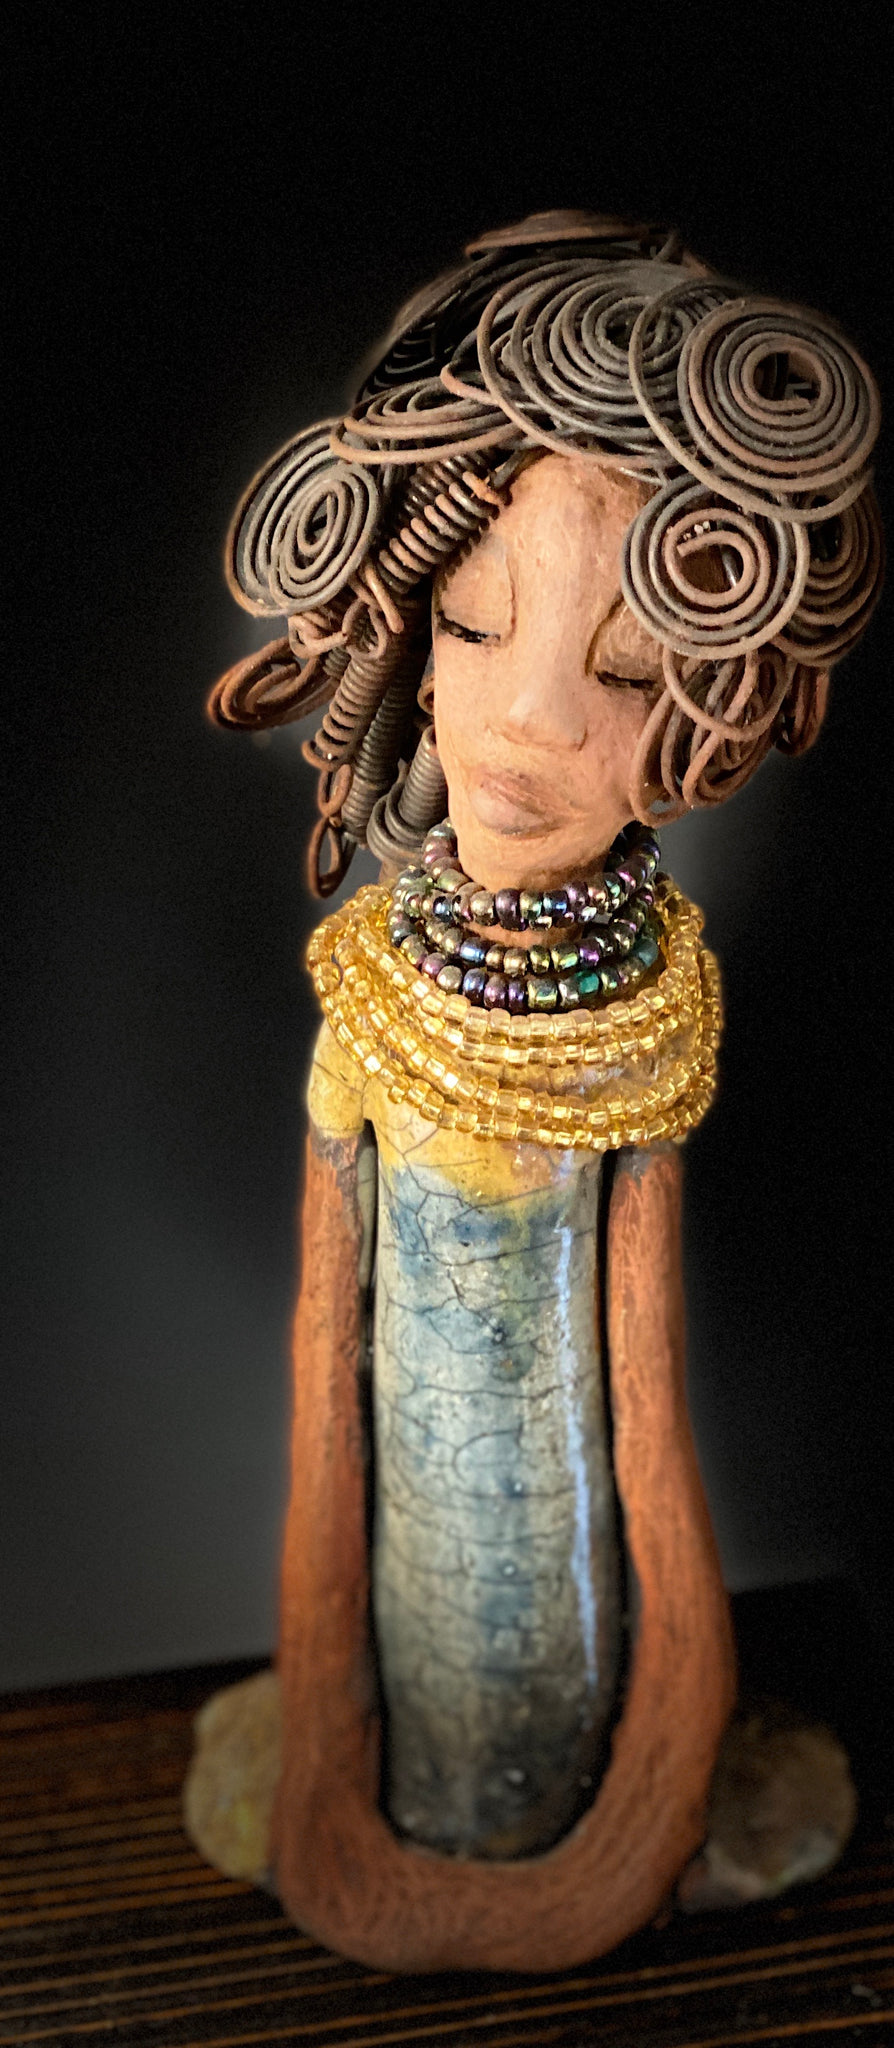 "Sophia knows but will never tell! Sophia stands 10.5"" x 4"" x 3"" and weighs 1.10 lbs. She has a  honey brown complexion with curls, coils and twisted, wire hair. Sophia wears a light blue crackle dress with a dazzling gold and multicolored beaded necklace. Yes, Sophia knows something but she will never tell. Sophia will spark a conversation of ""say what"" in your place."